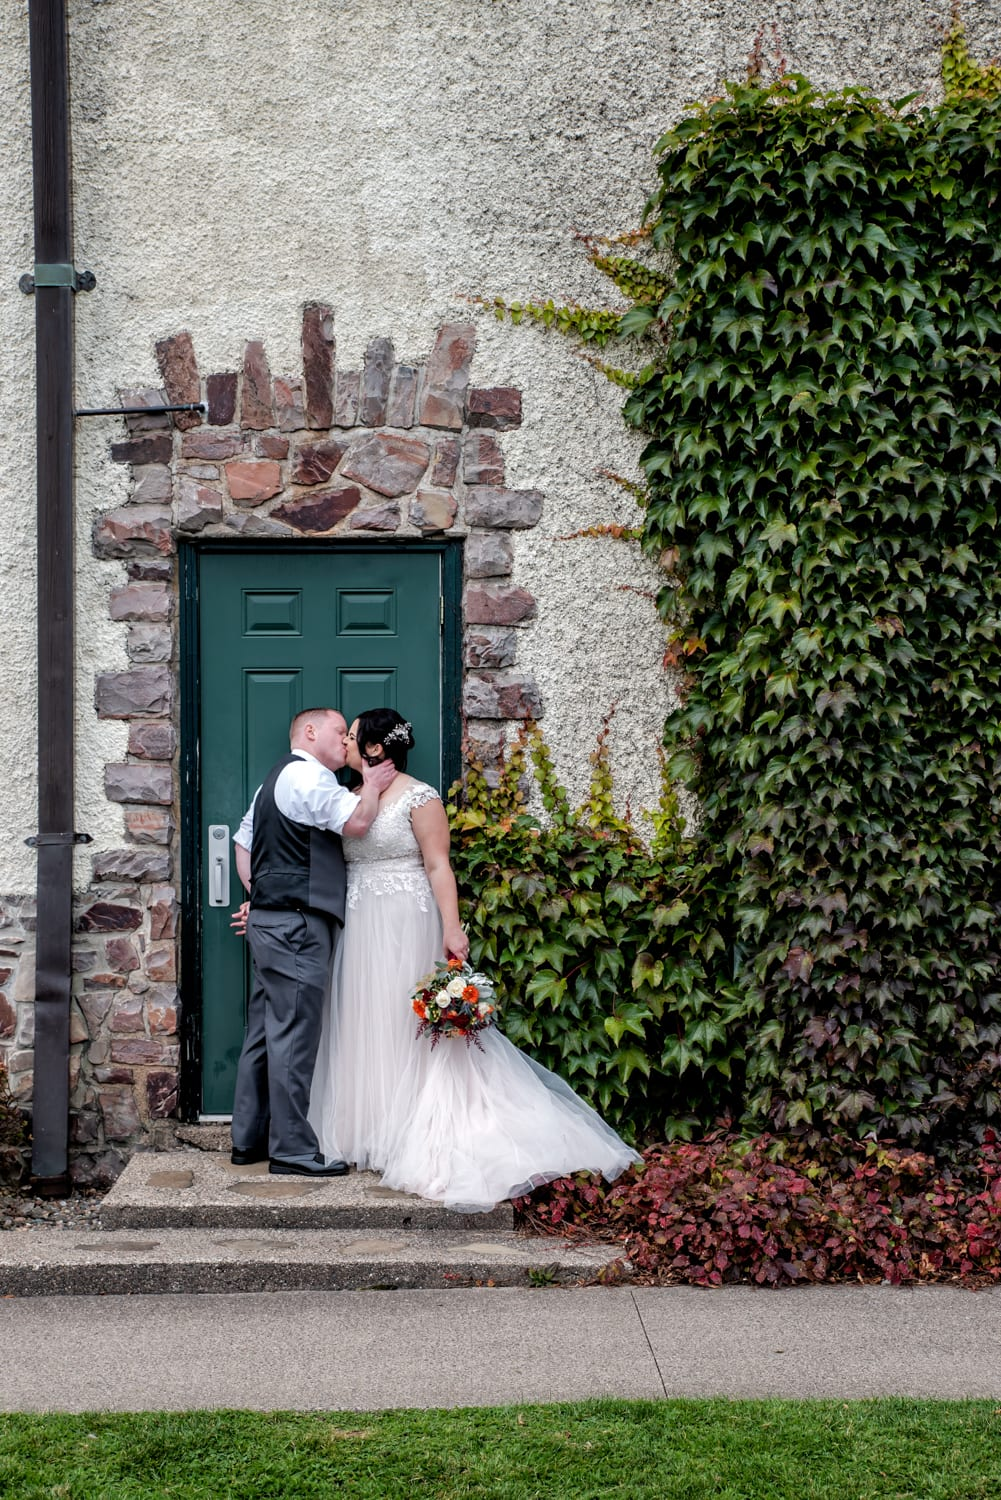 The bride and groom kiss against a stone and brick wall with veins, during their wedding photos at Digby Pines.